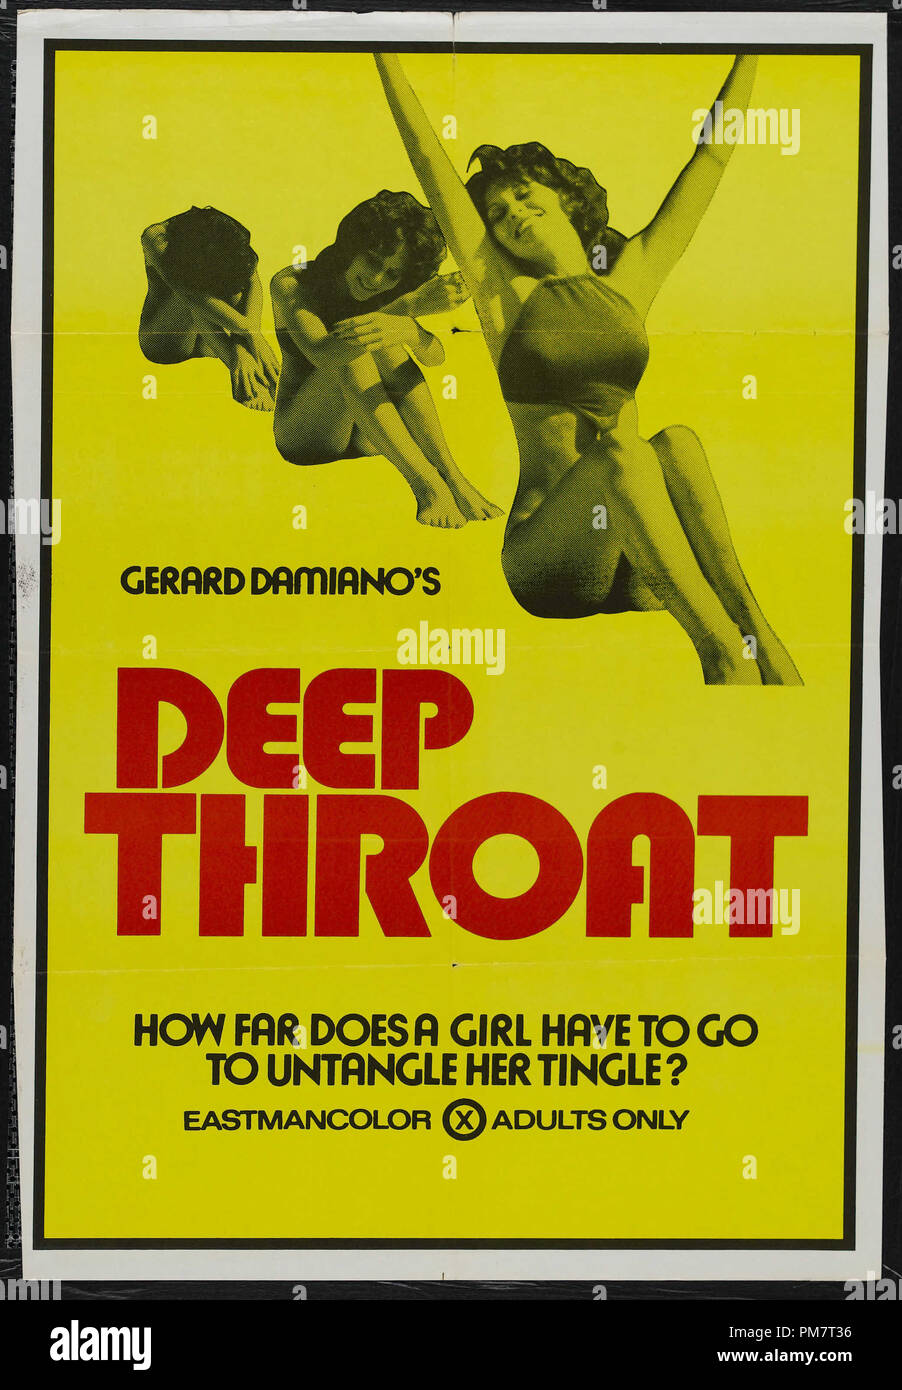 Deep throat adult